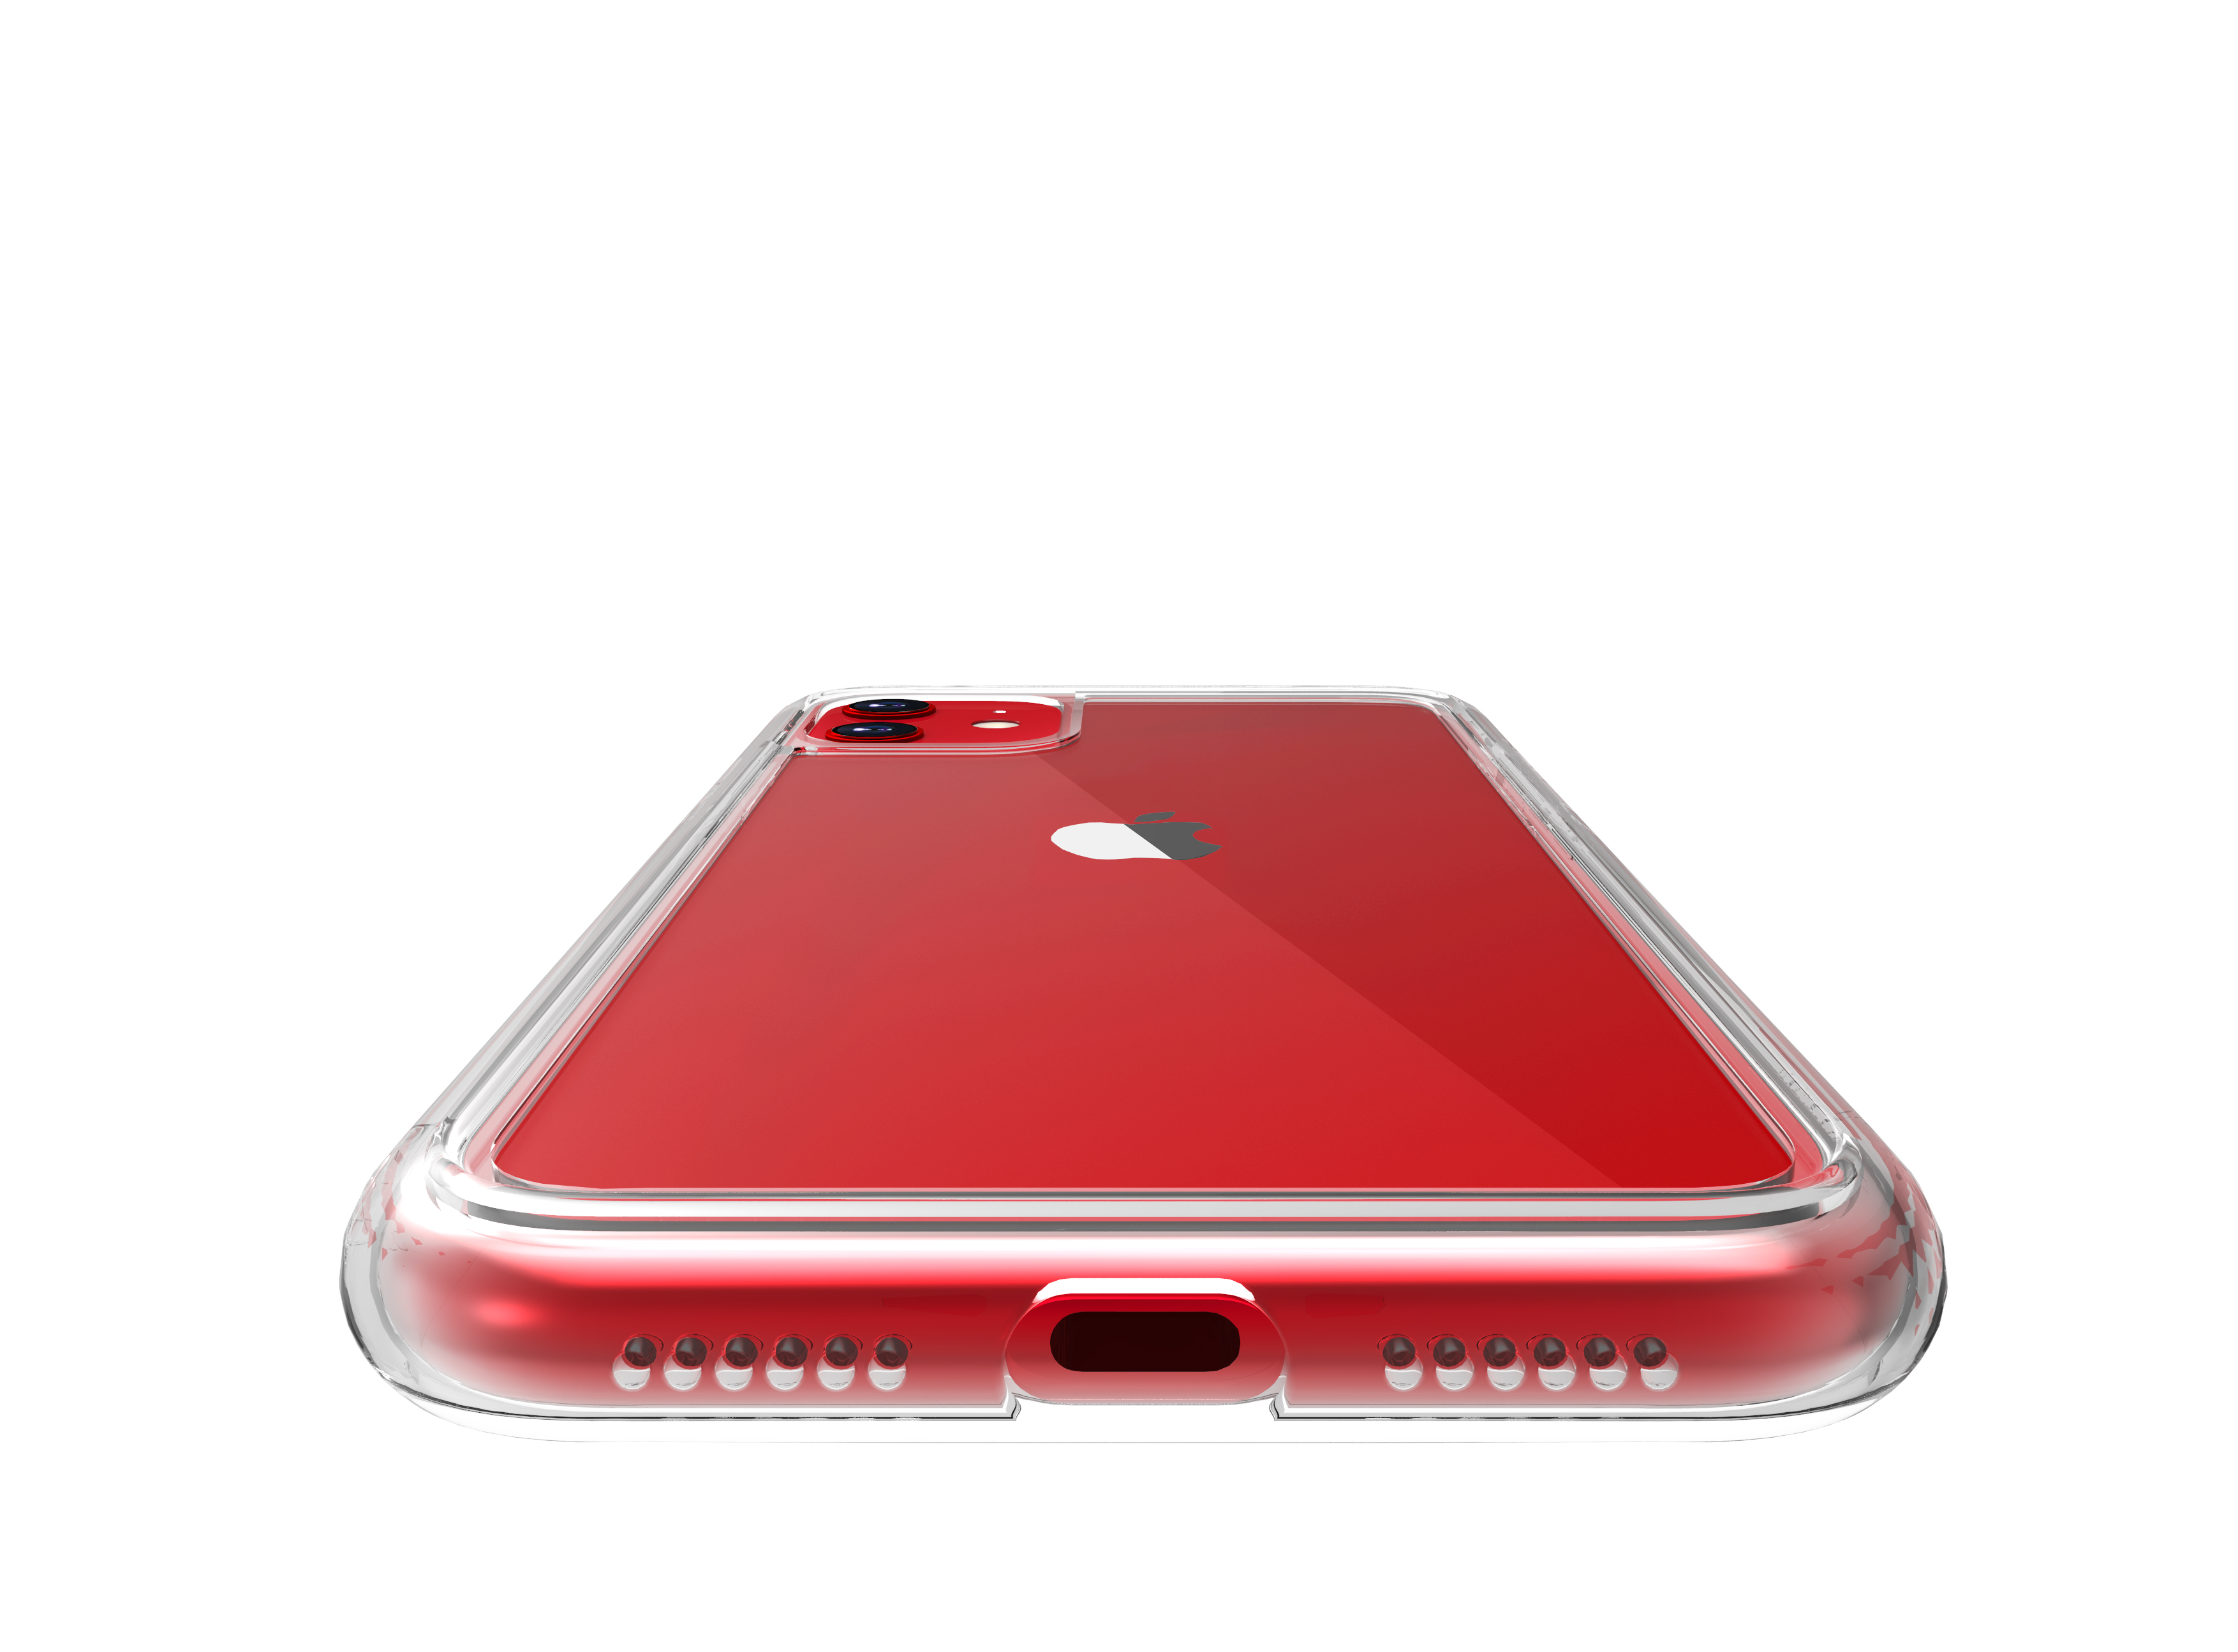 iPhone11-Red for linkase air ADM